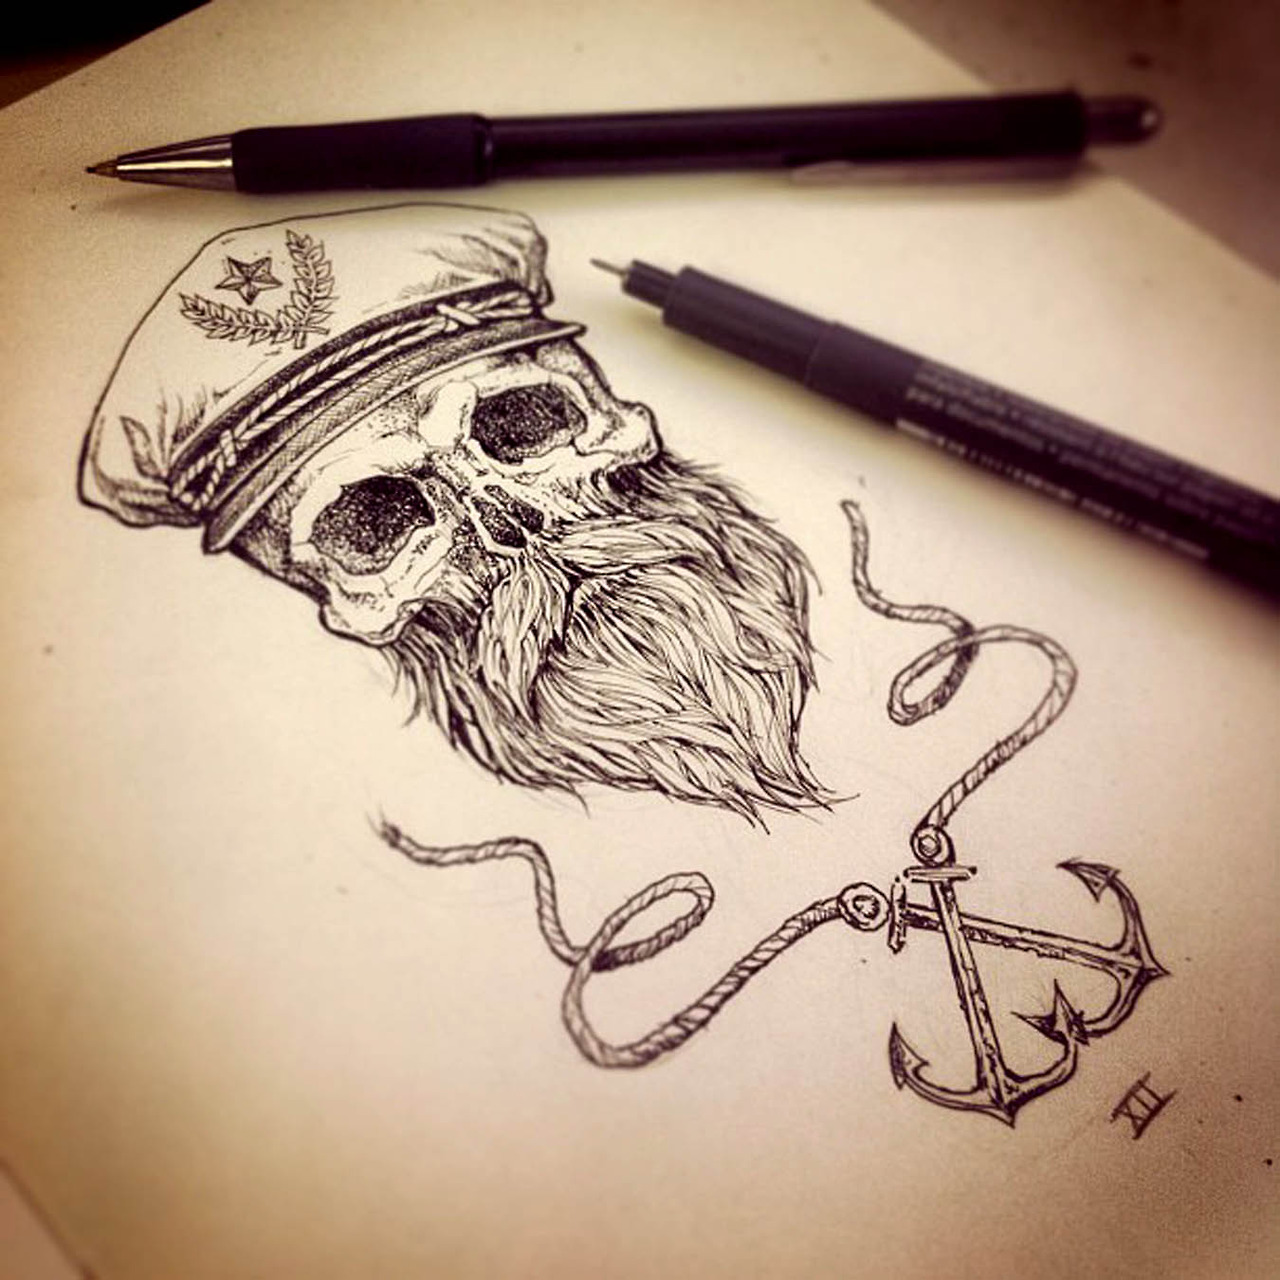 Skull With Crossbones And Pink Bow Tattoo Design Idea